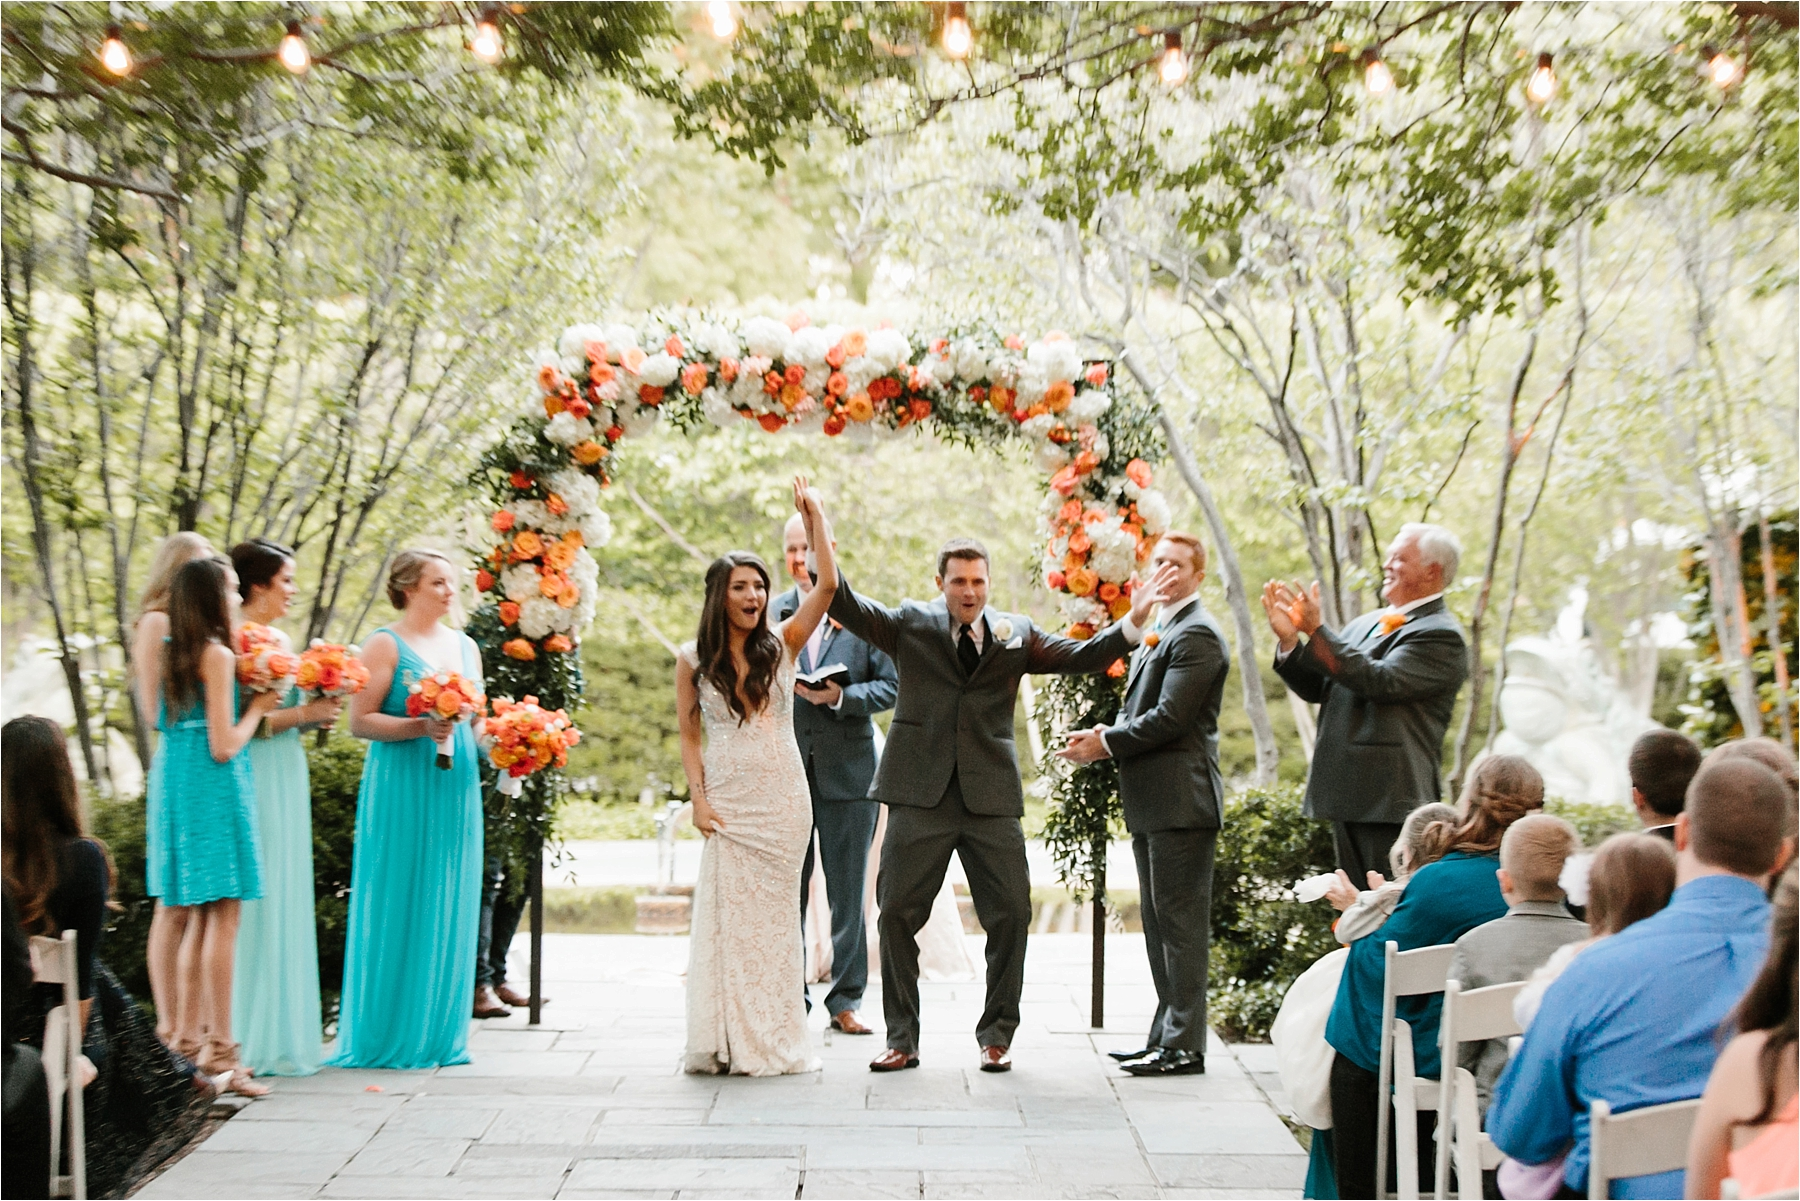 Devyn + Caden __ a Dallas Arboretum Garden Style Wedding by North Texas Wedding Photographer Rachel Meagan Photography __ 114